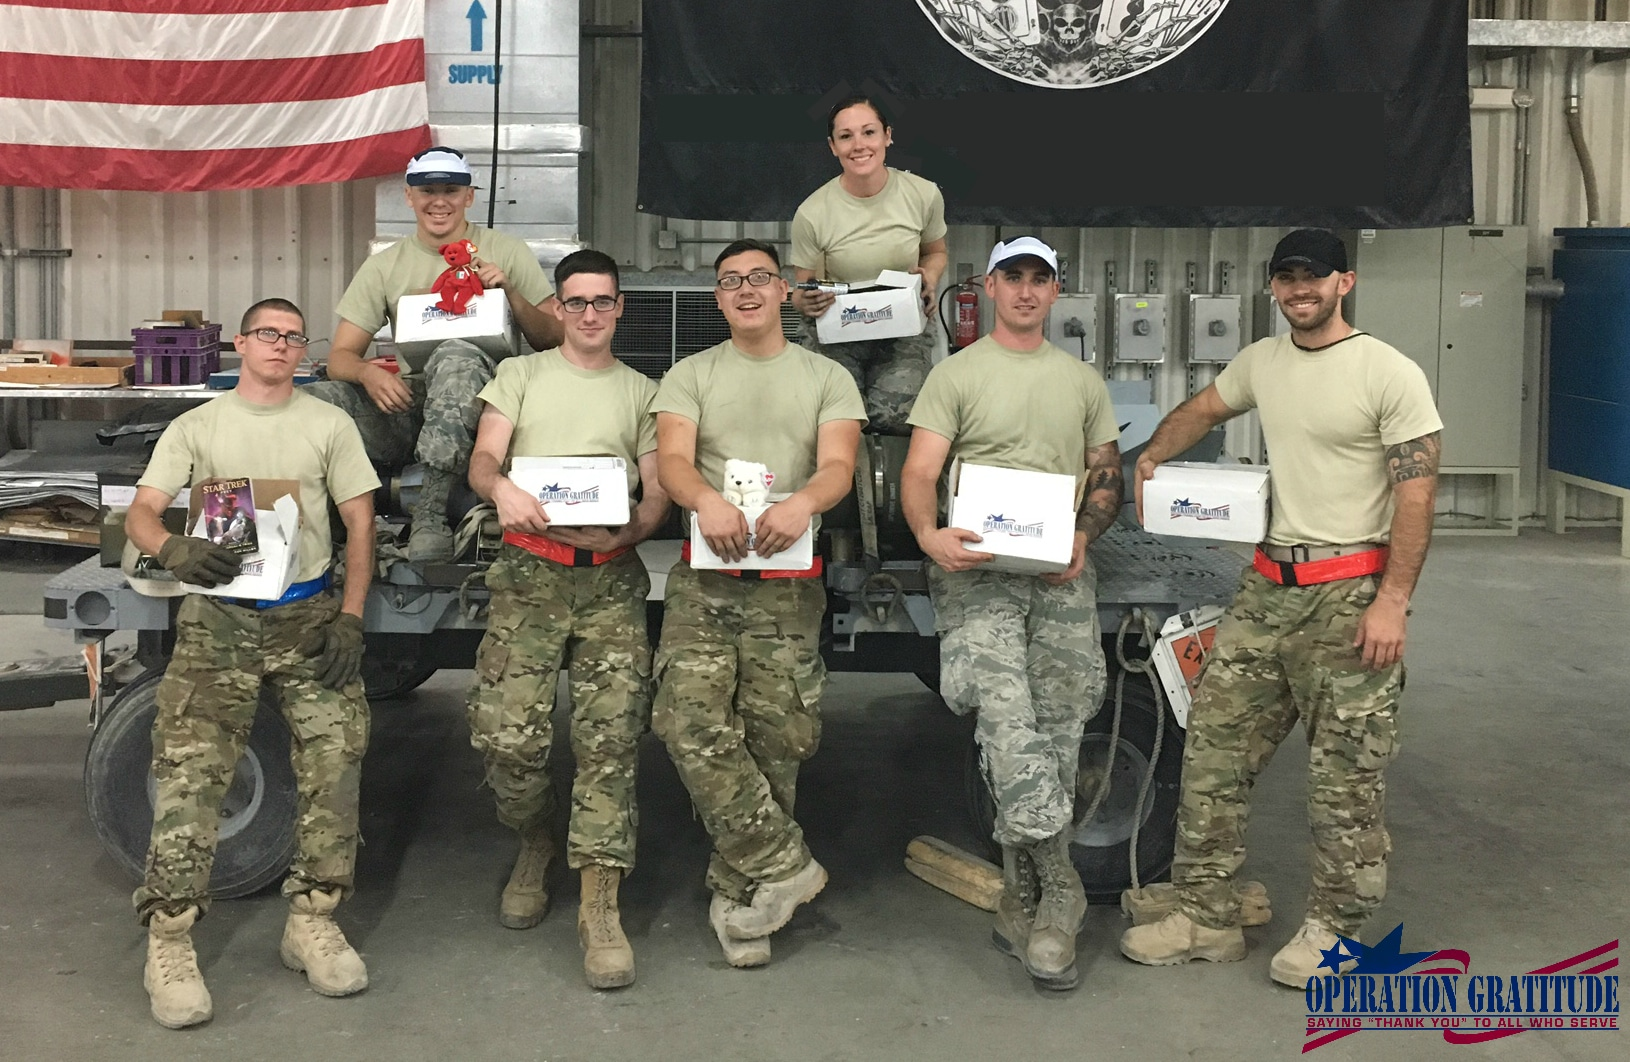 operation gratitude soldiers with boxes